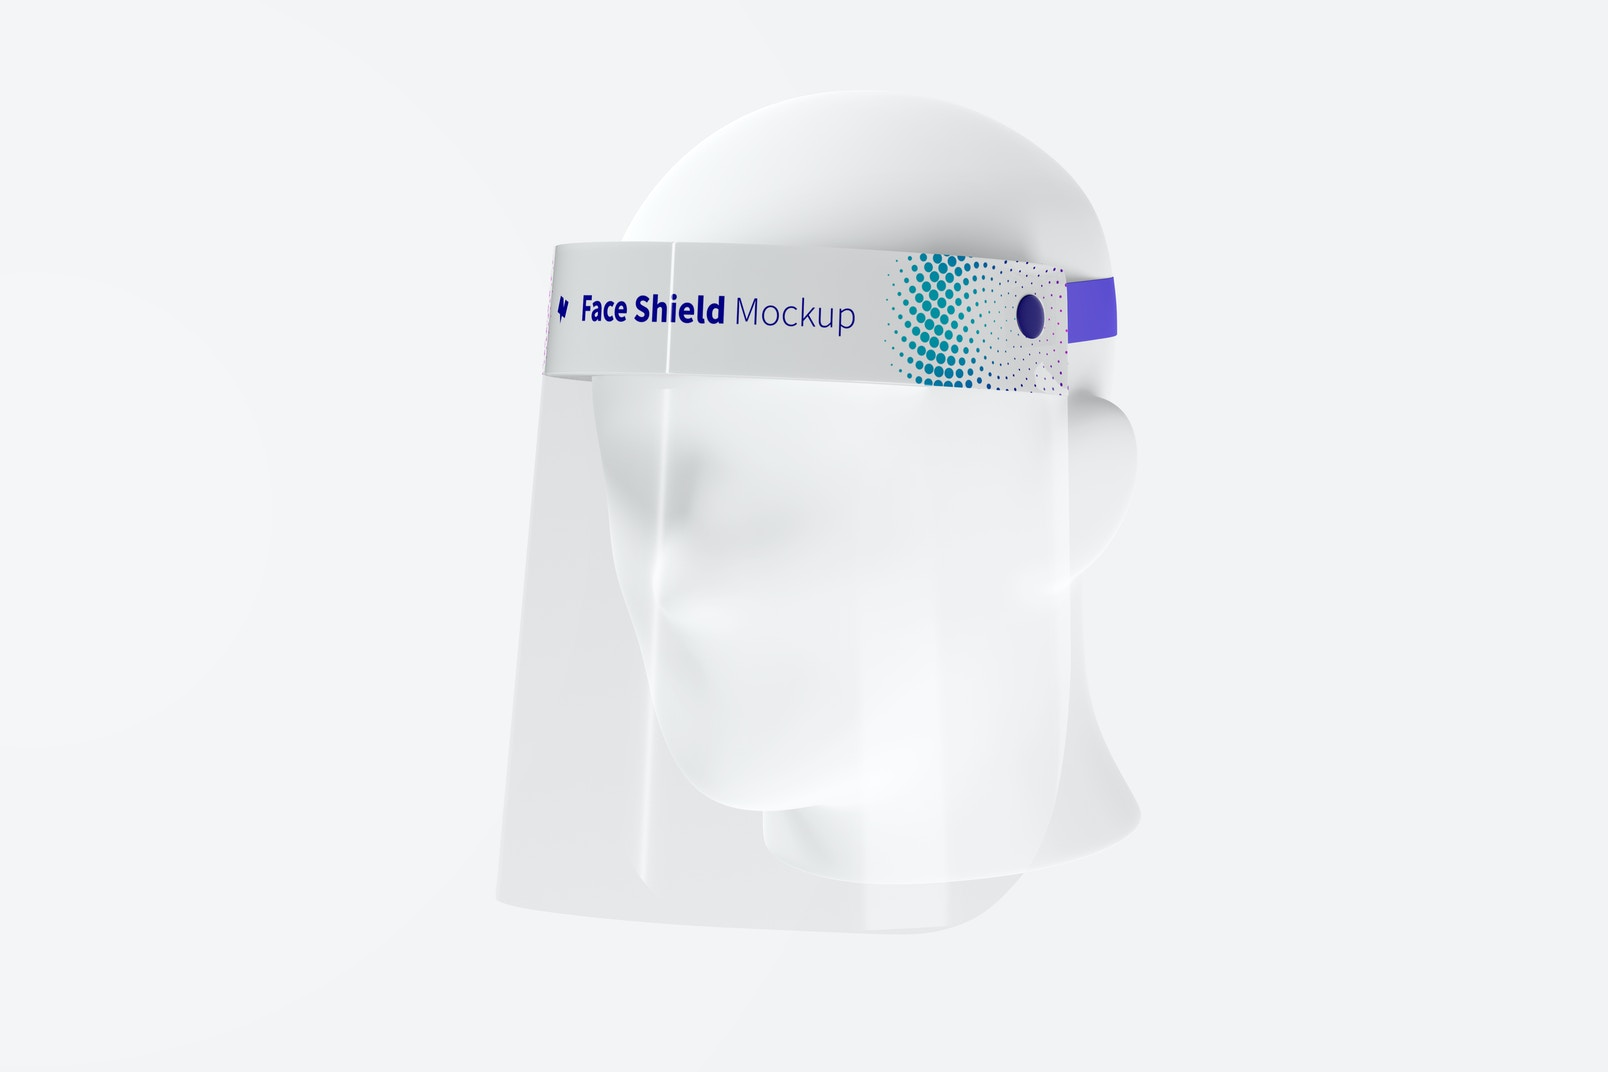 Face Shield with Head Mockup, 3/4 Front Right View